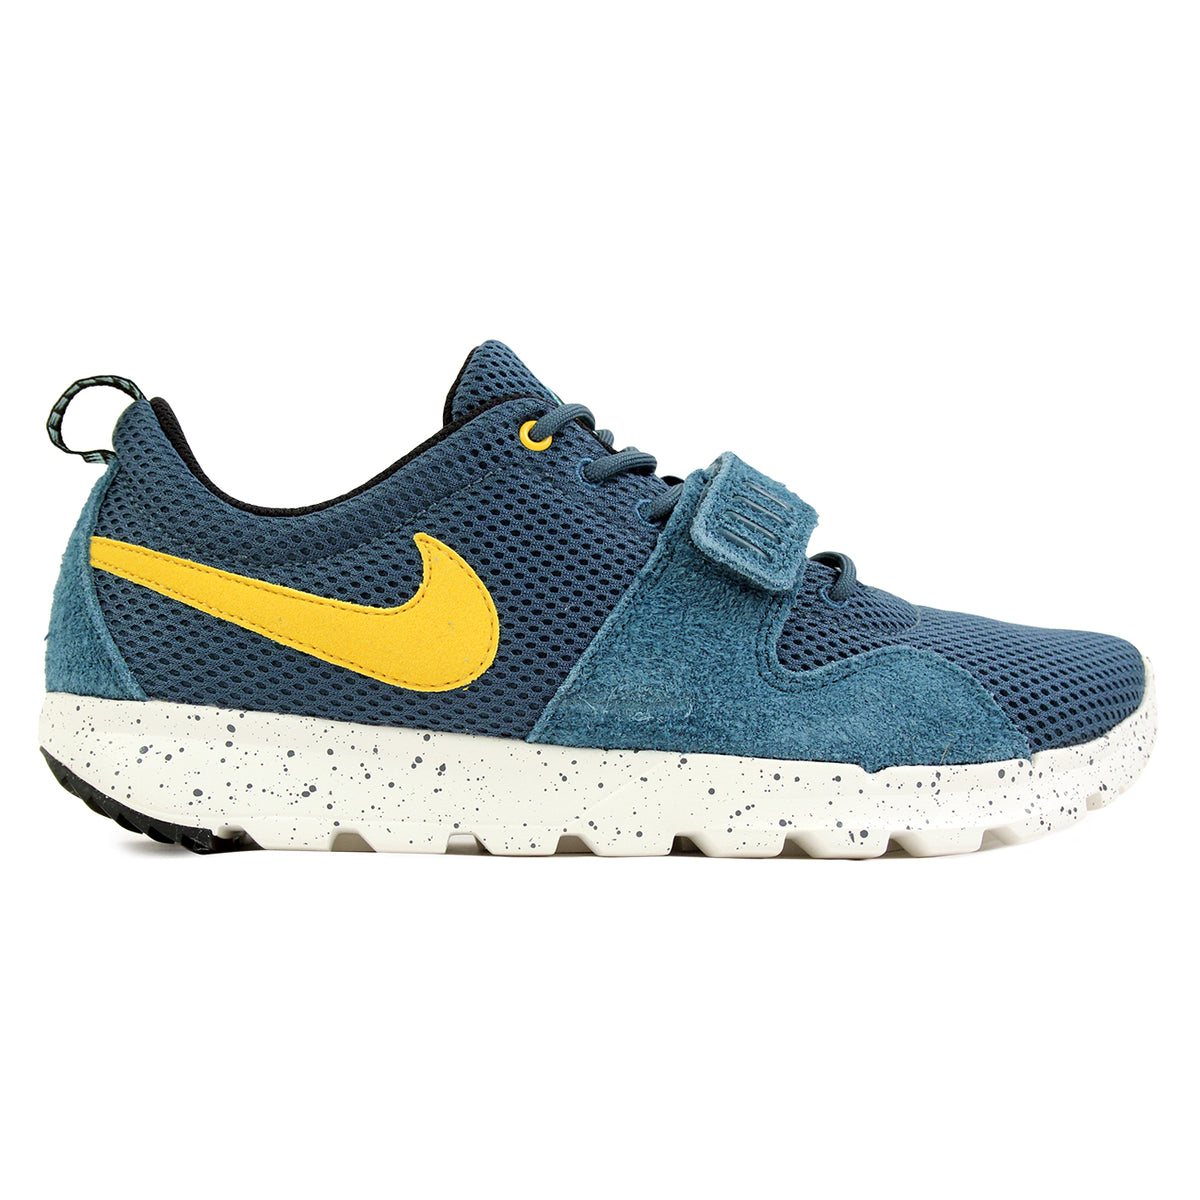 43c3ad88c093 Trainerendor SE Shoes in Night Factor   Varsity   Sail by Nike SB ...